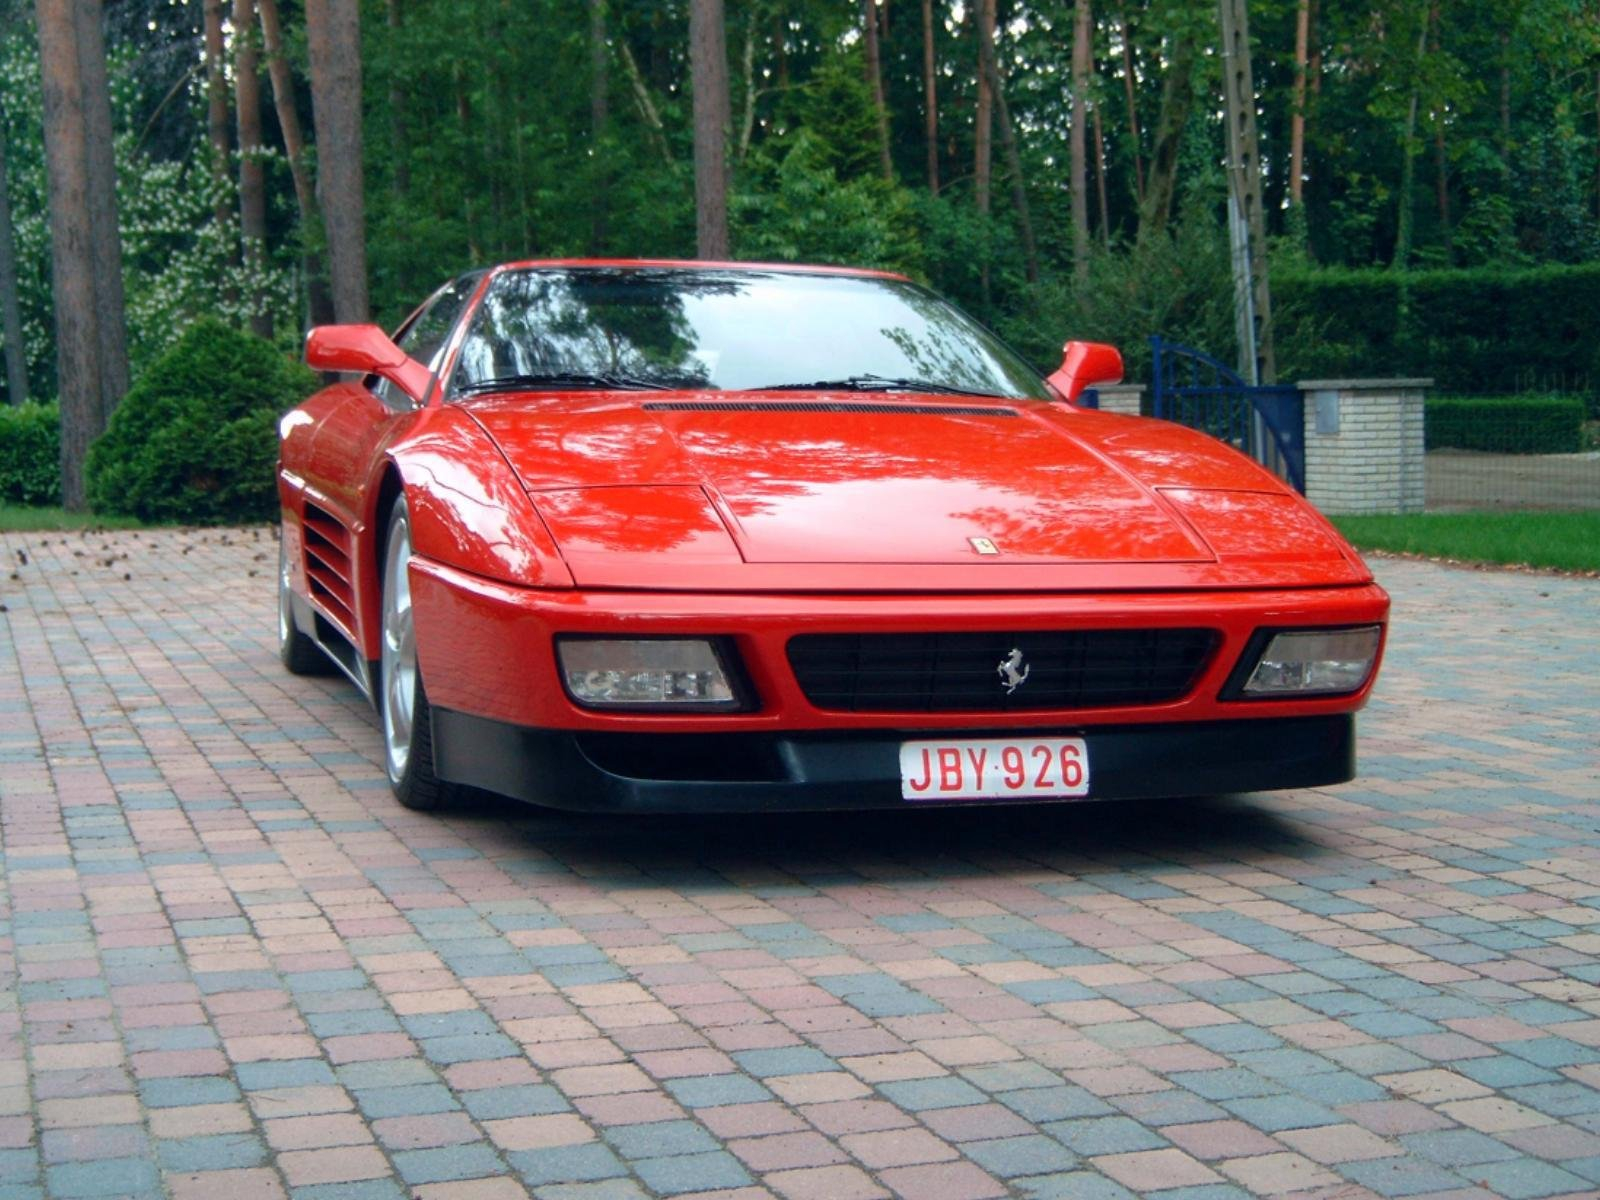 1989 1995 ferrari 348 ts picture 40355 car review top speed. Black Bedroom Furniture Sets. Home Design Ideas